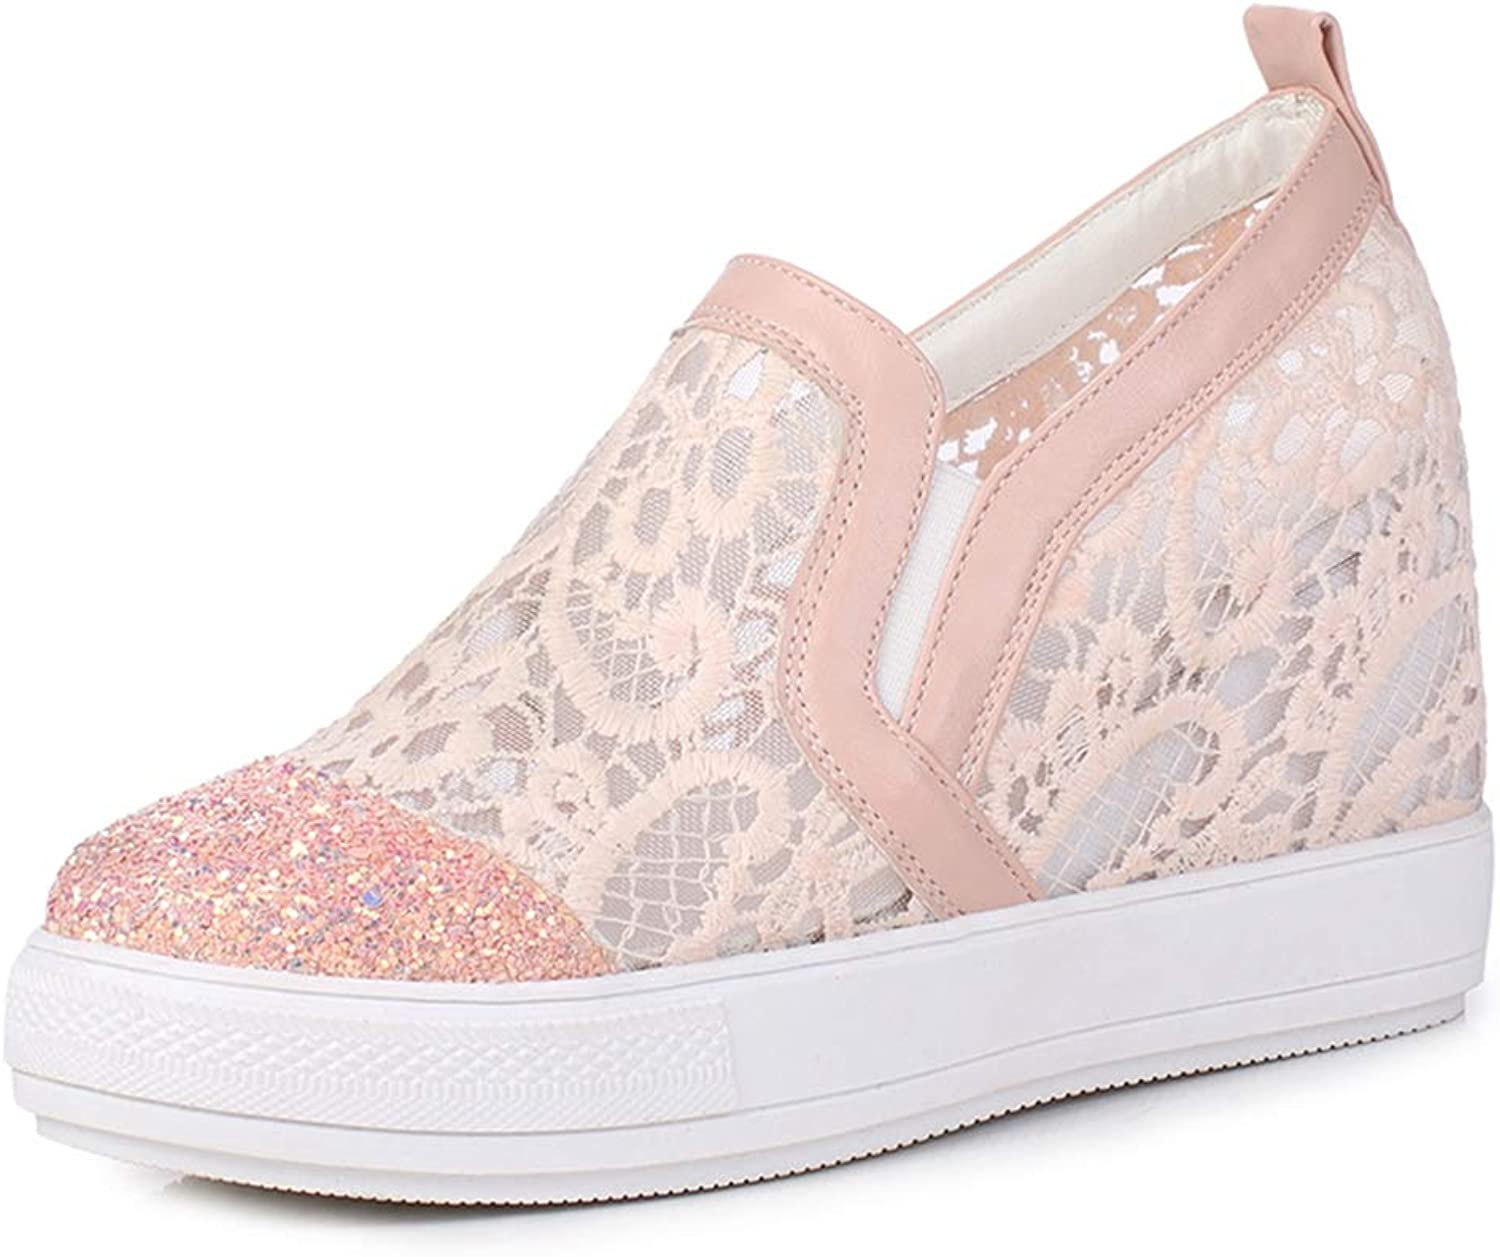 SaraIris Women 's Mesh Comfortable Platform Breathable Casual shoes, Wedges Slip on Spring Summer Fashion Sneakers